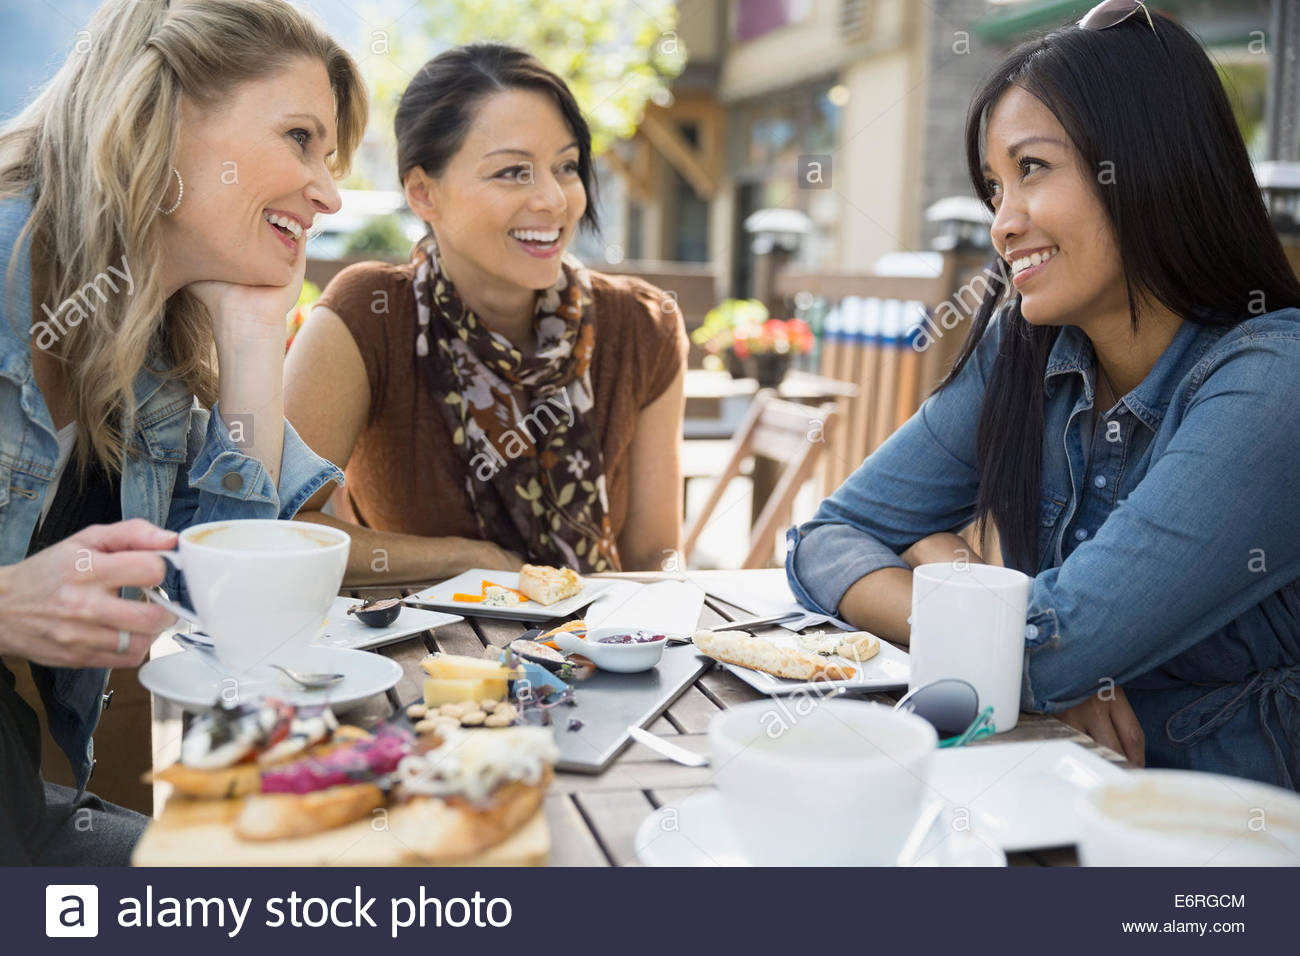 Women eating together in cafe - Stock Image